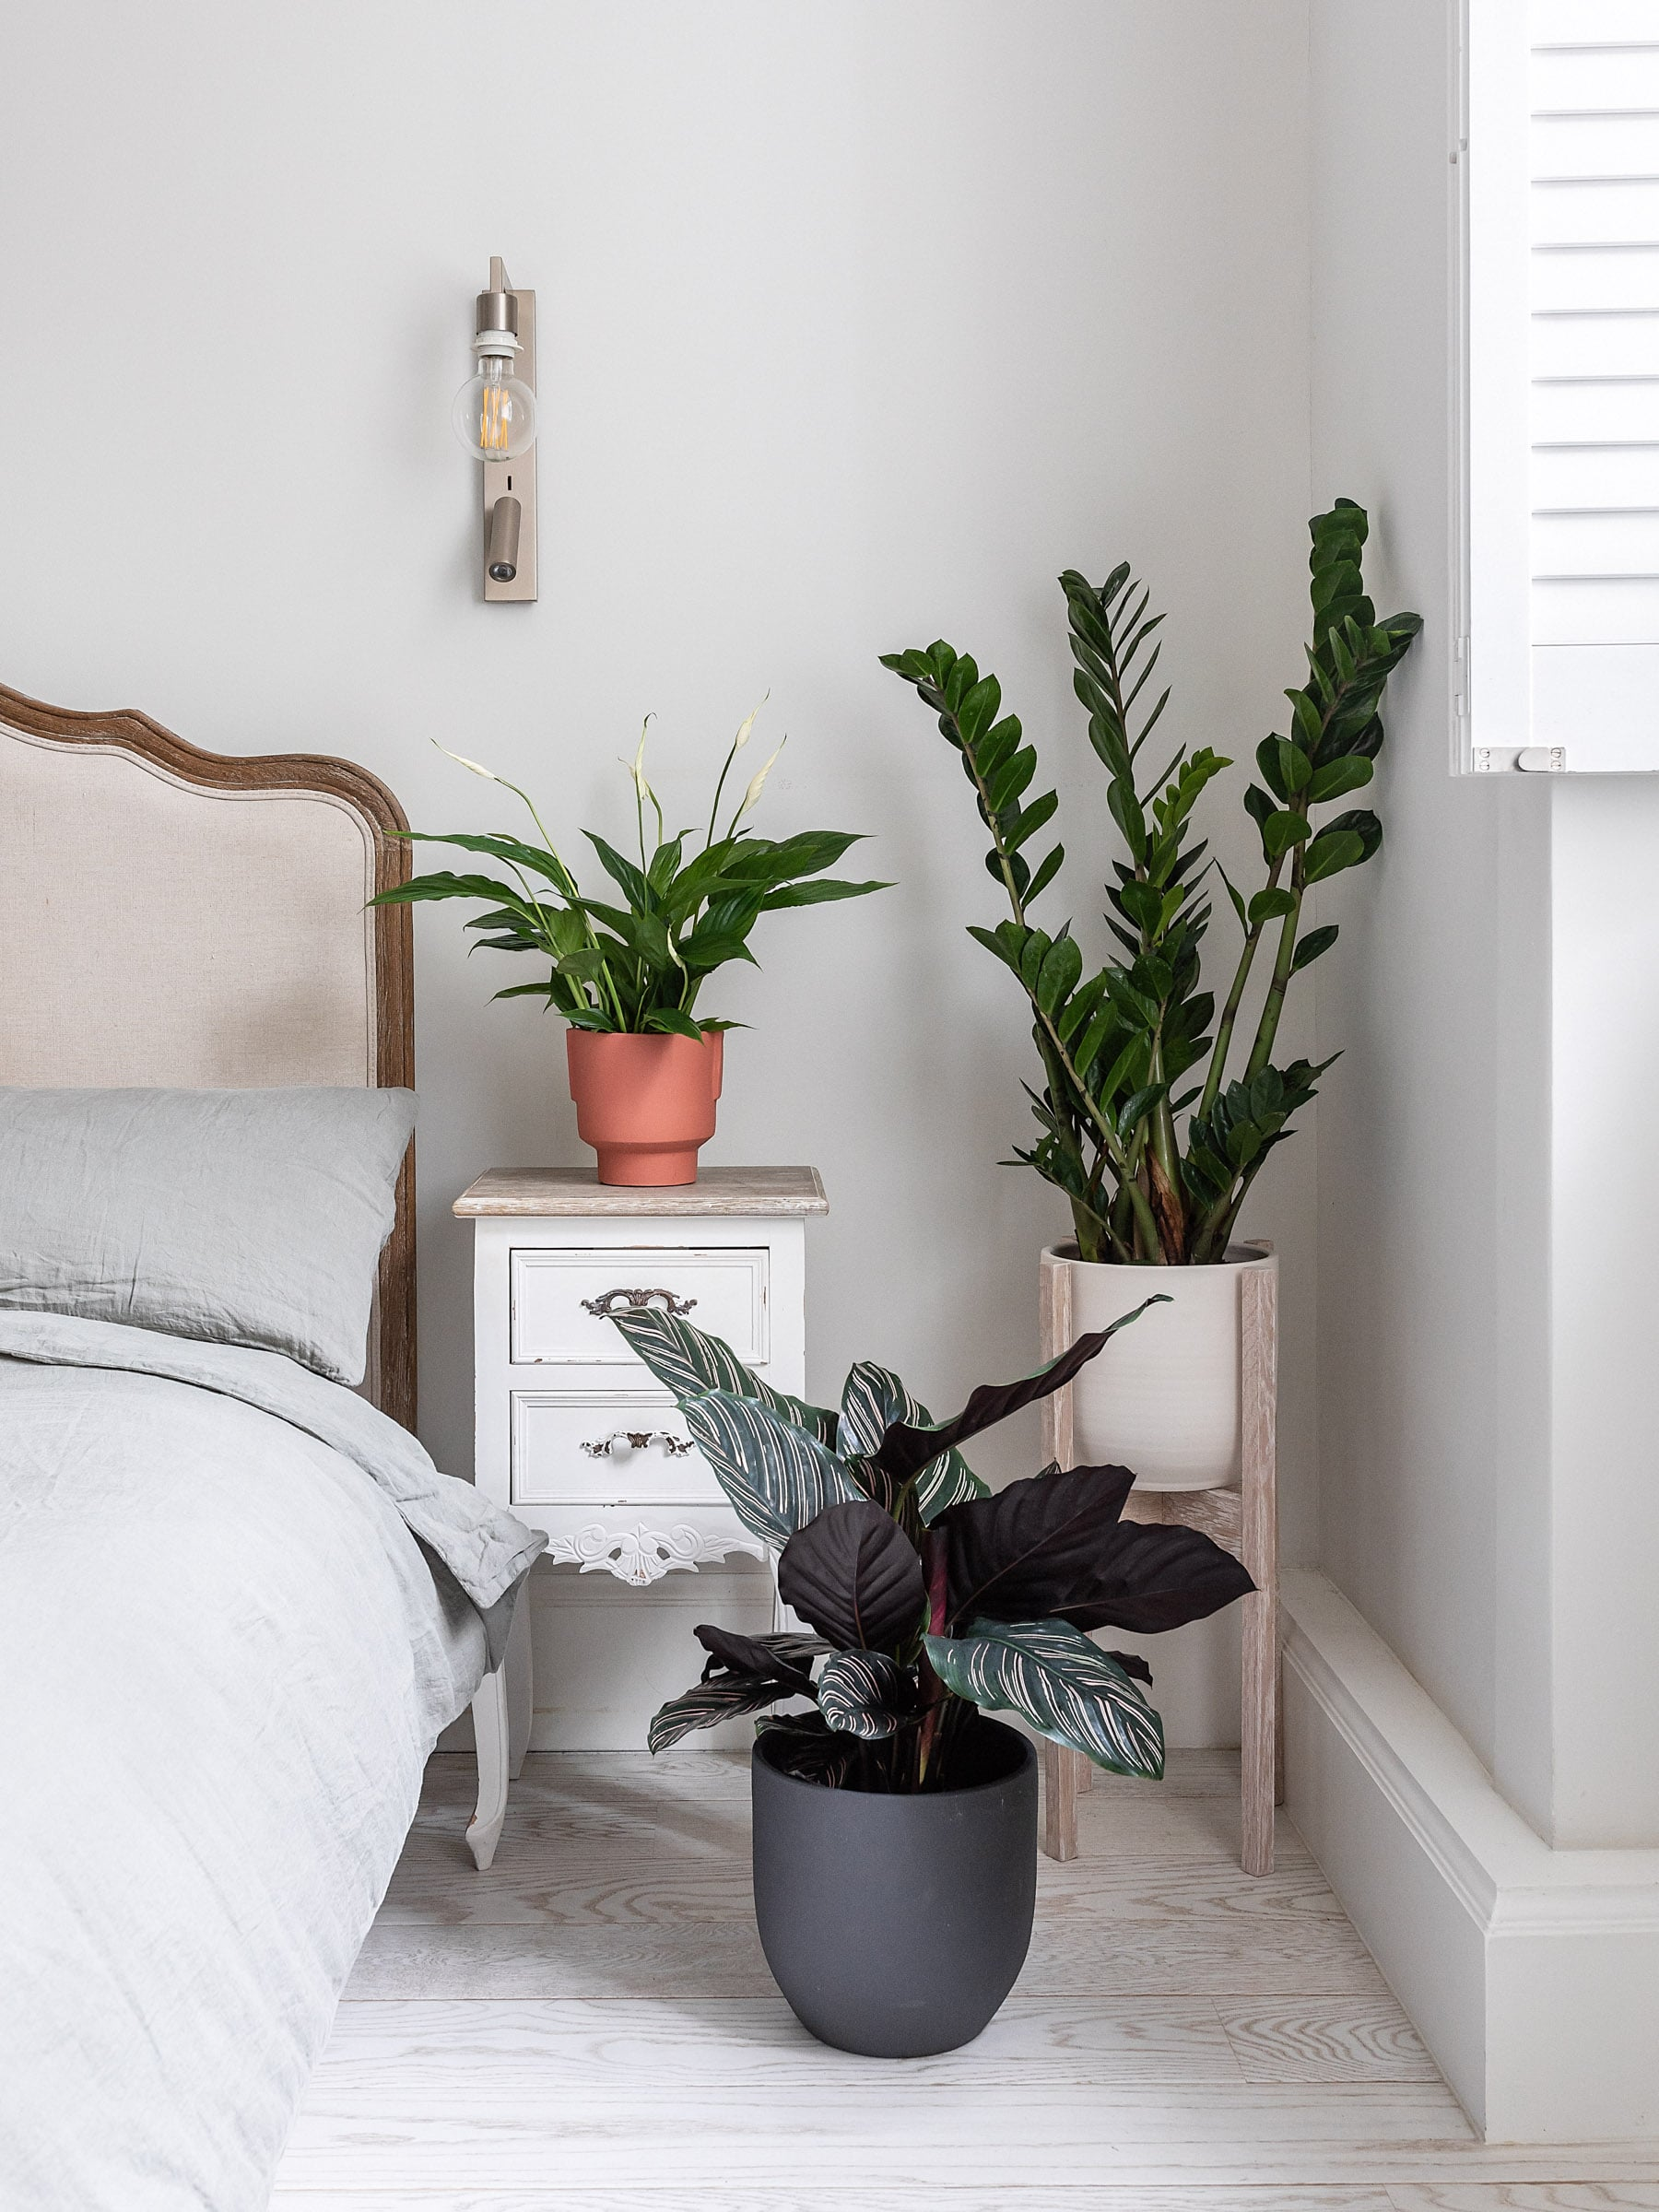 Keeping indoor house plants alive on holiday by Leaf Envy